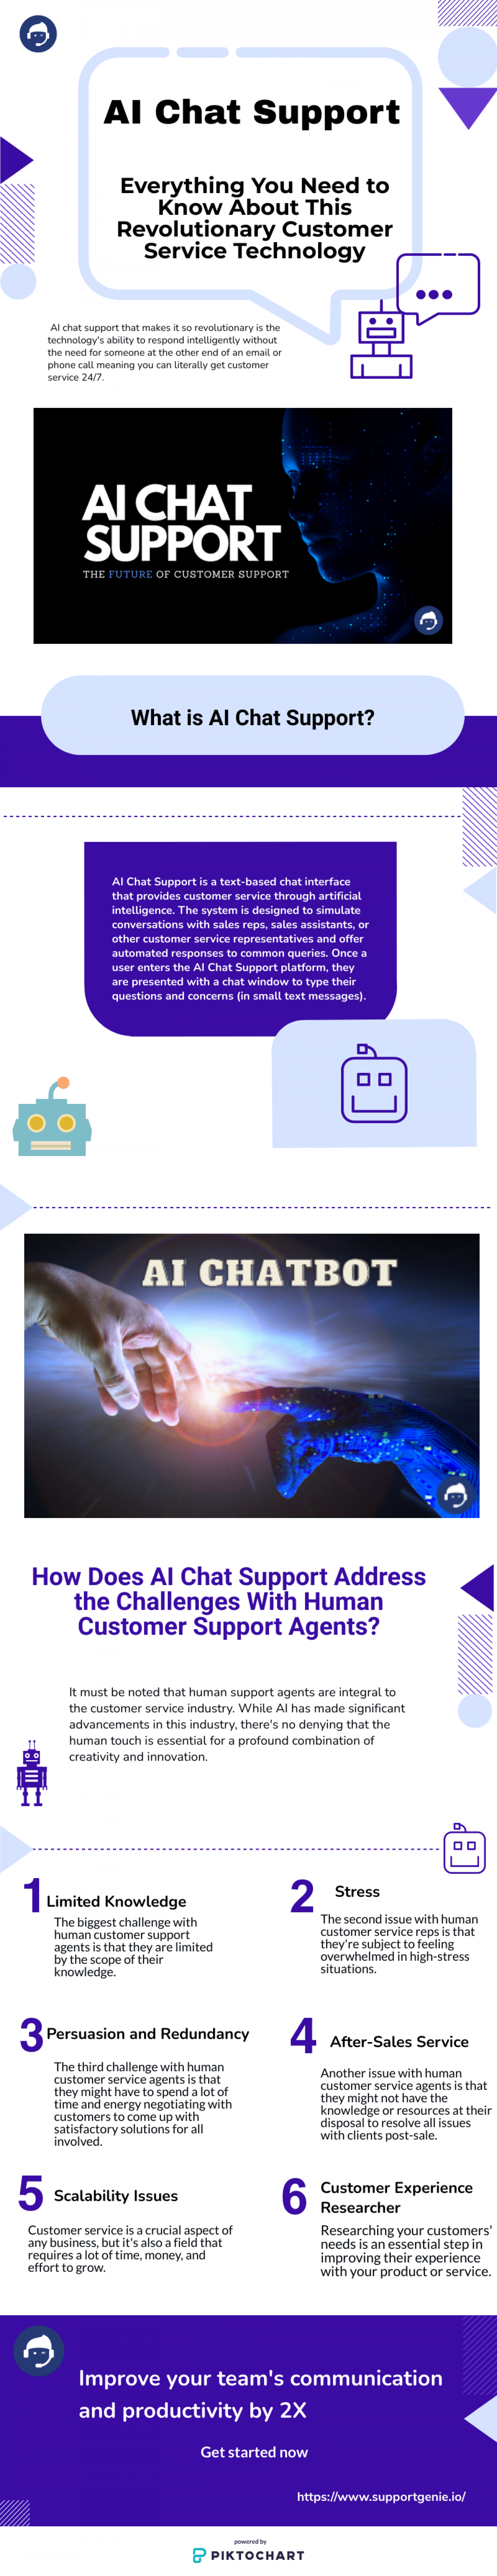 AI Chat Support Infographic